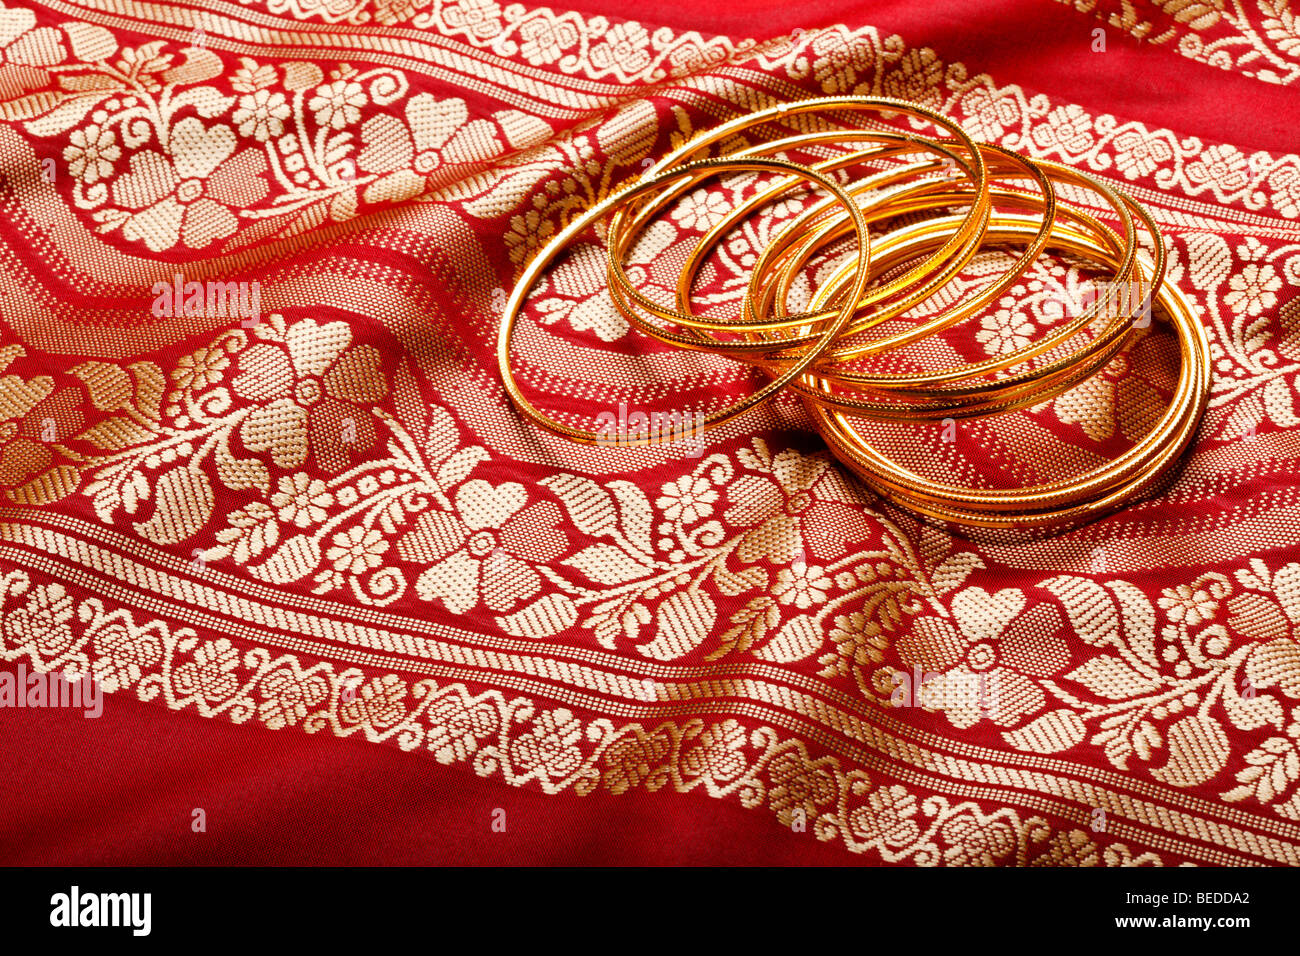 Indian sari with golden bangles close up - Stock Image